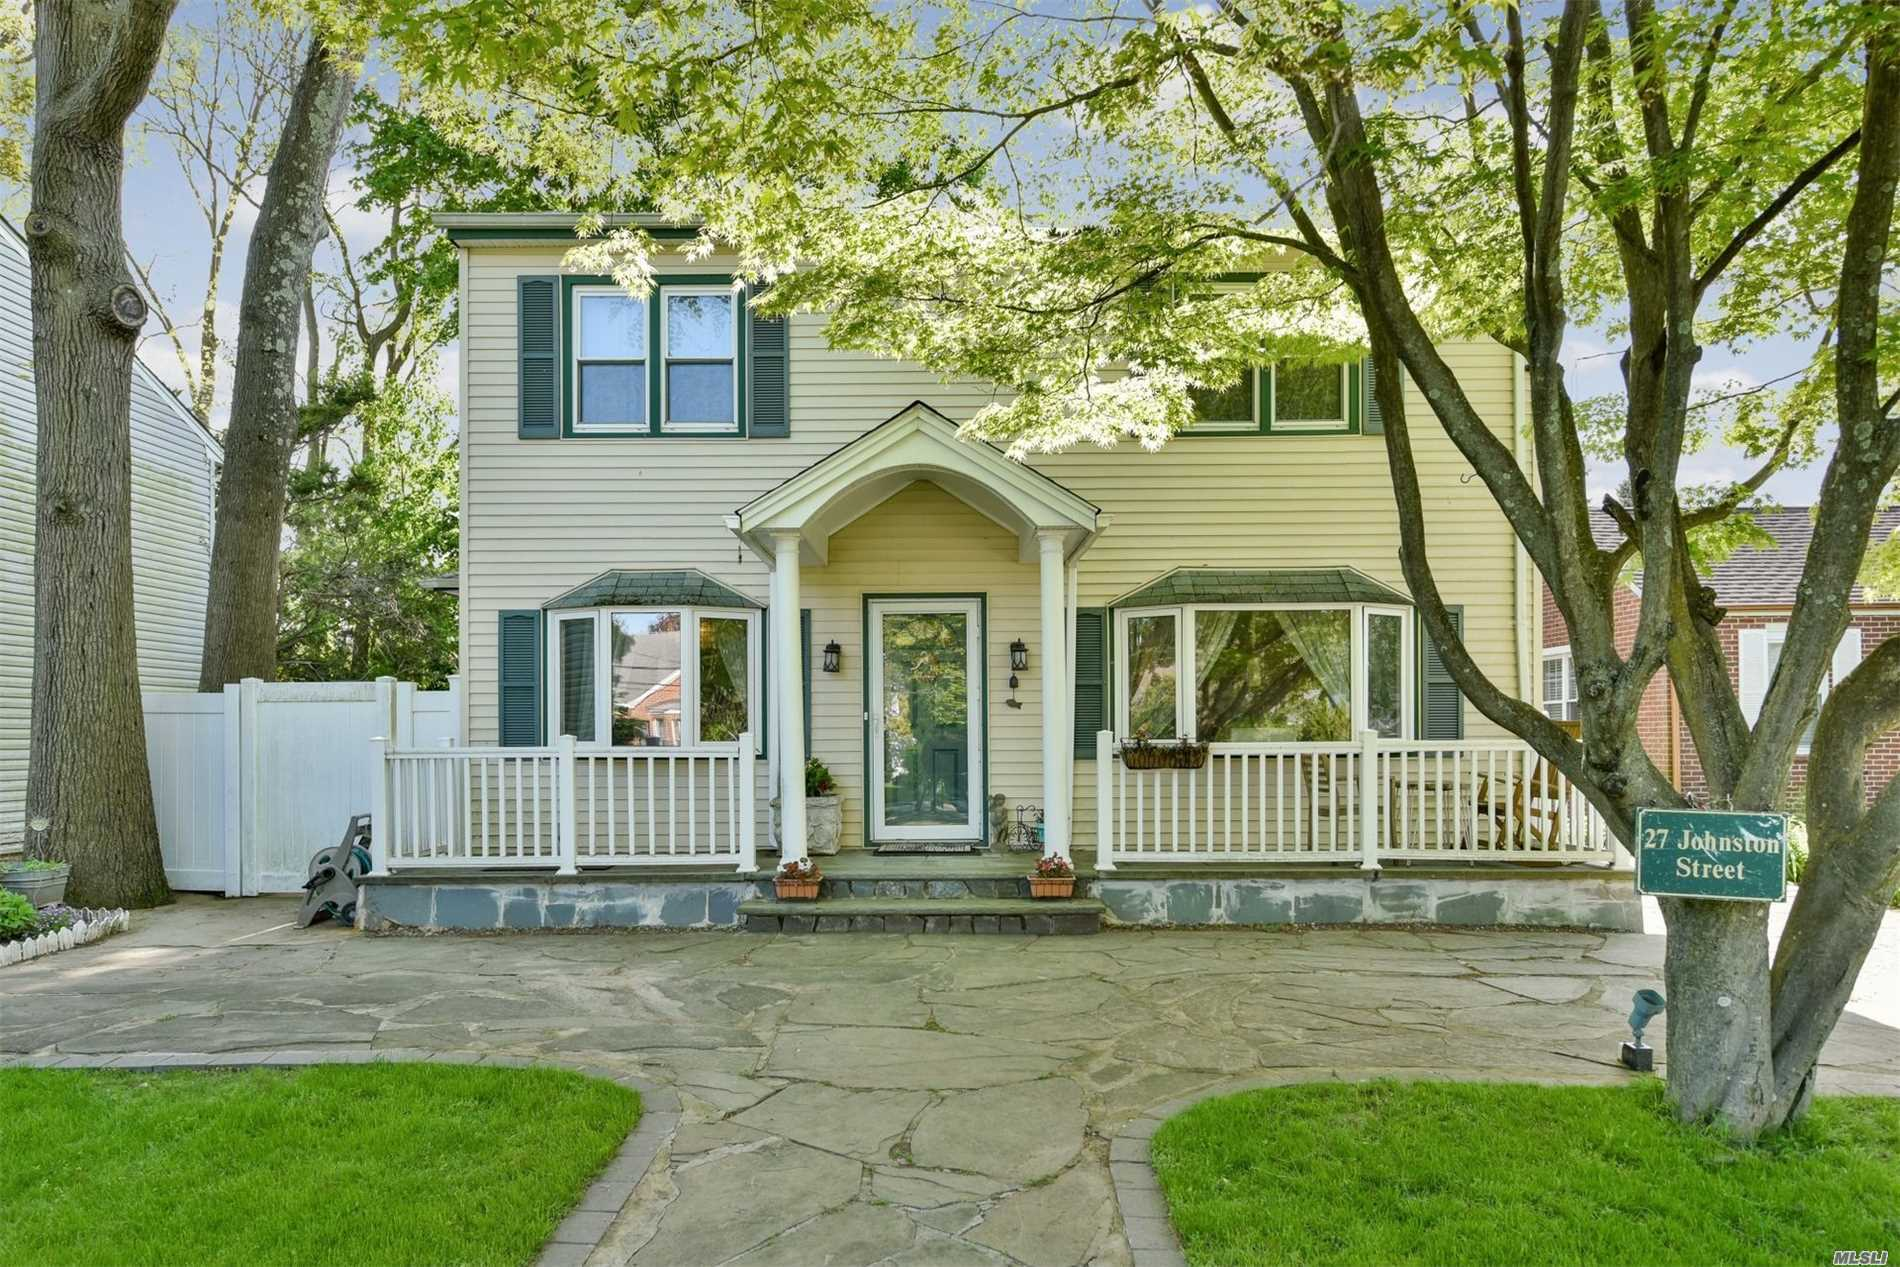 Beautiful Updated Center Hall Colonial Located In Picturesque Locust Valley! Open Floor Plan Features New Full Bath And Eat In Kitchen; Large Living Room With Wood-Burning Stove, Great Entertainment Space, Family Room Overlooking Privately Fenced Yard And Great Closets And Storage!!! There Is A Covered Rear Patio And Separate Shed. Close To Beach, Amusement Park, And Lirr!